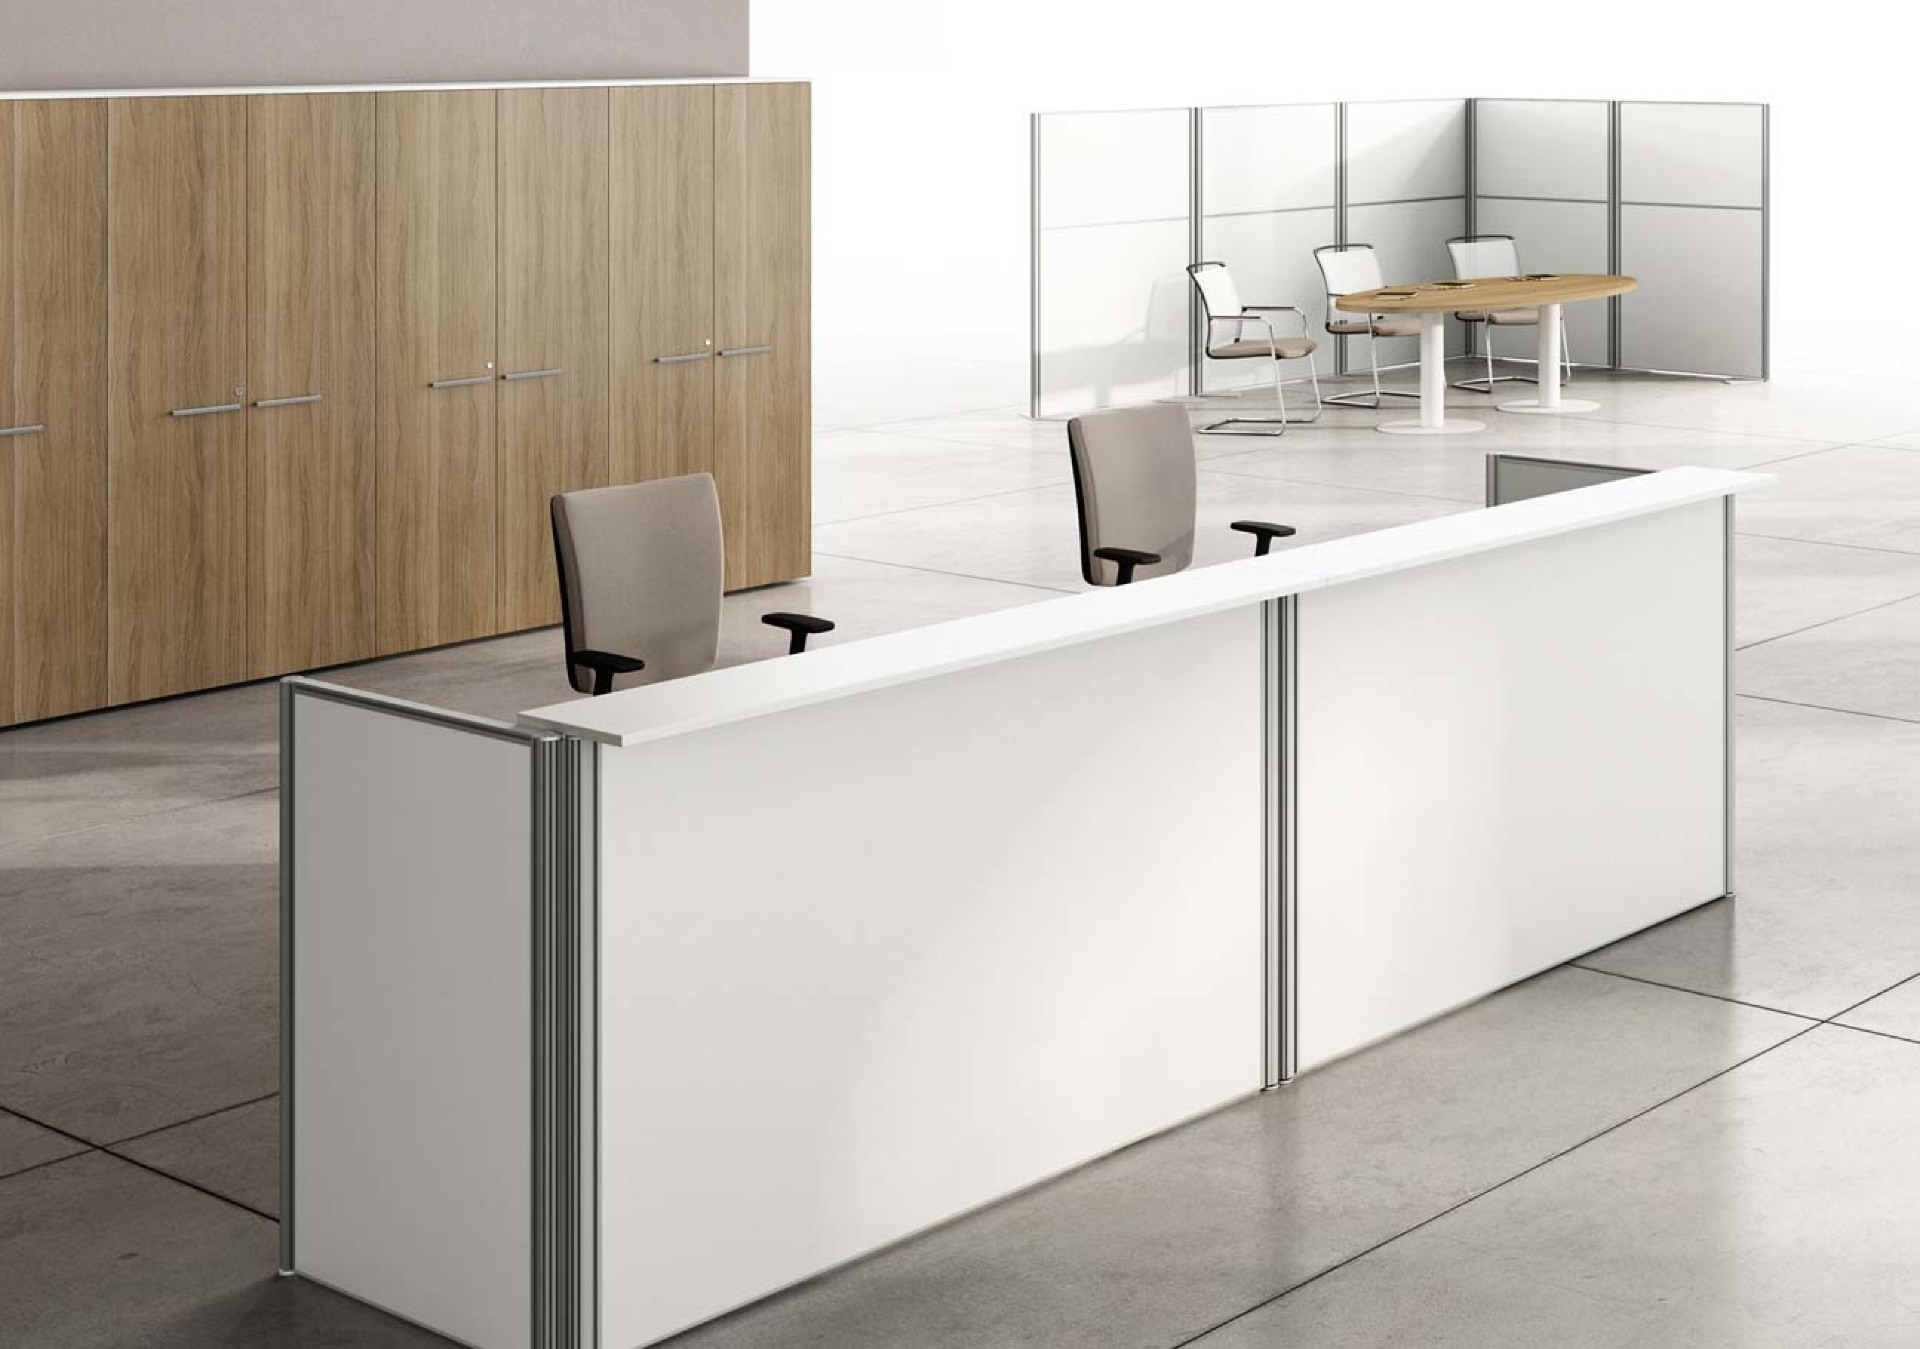 reception-operative-planet-box-partition-counter-02.jpg